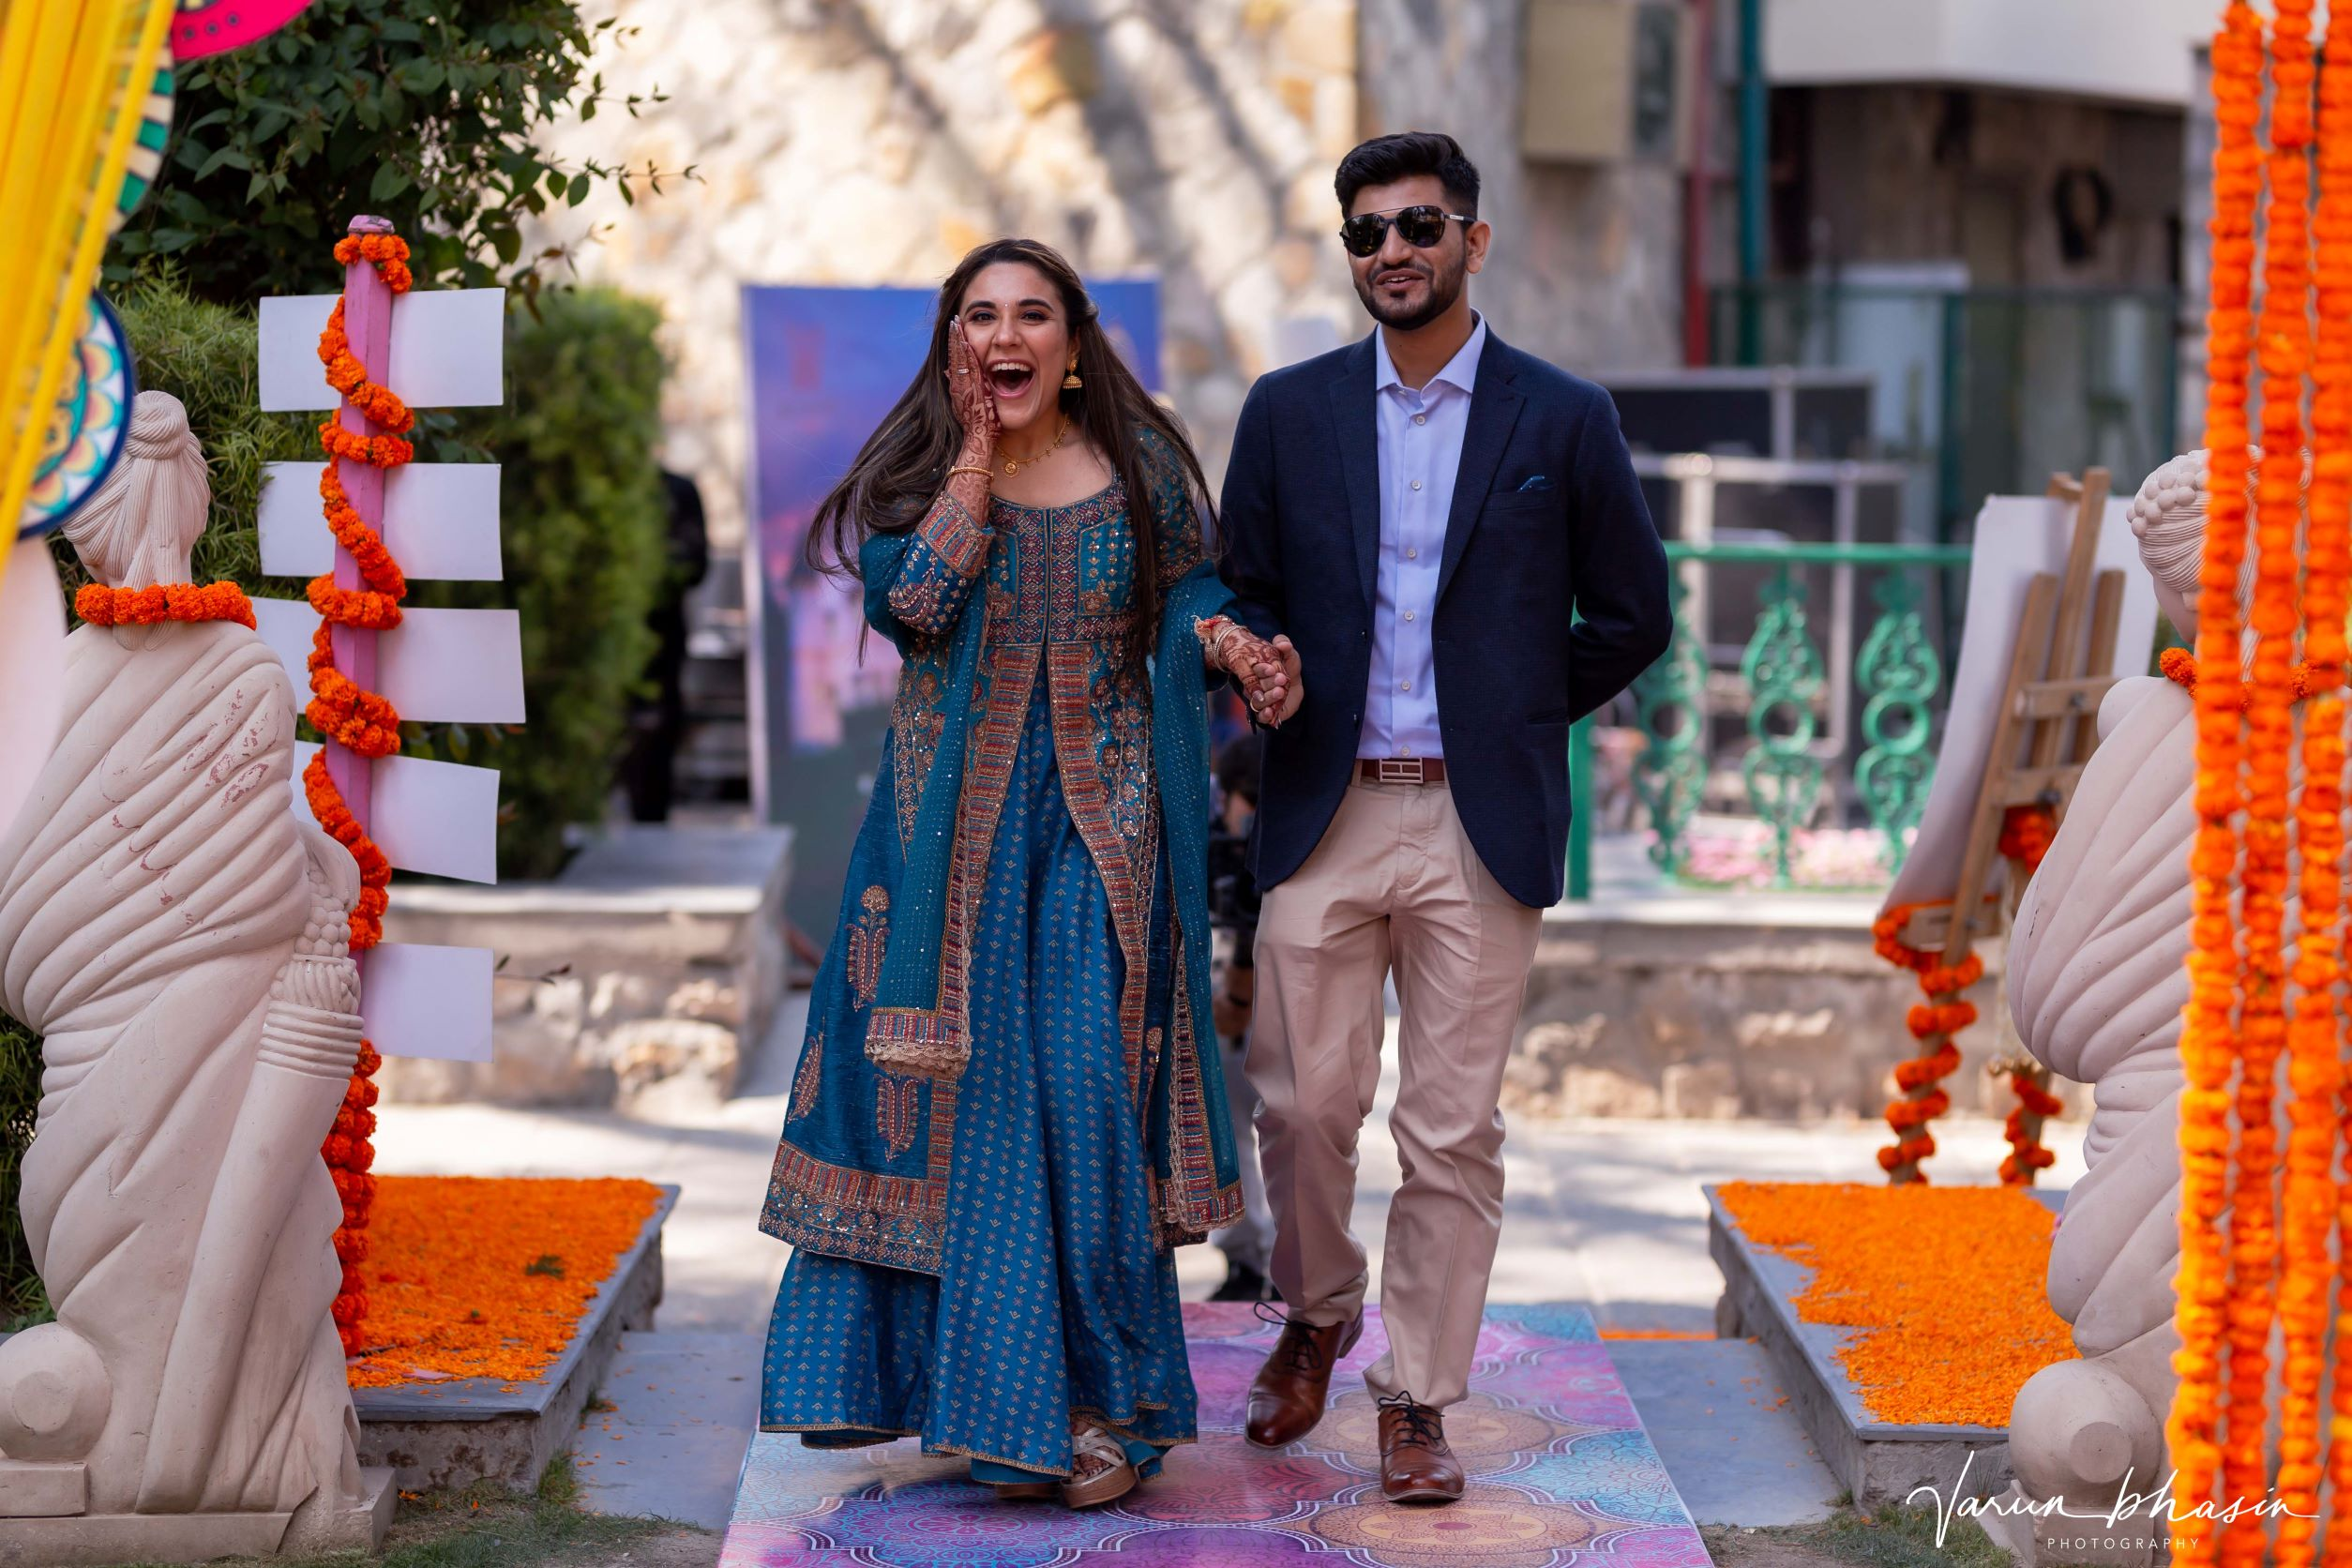 candid shot of the couple entering